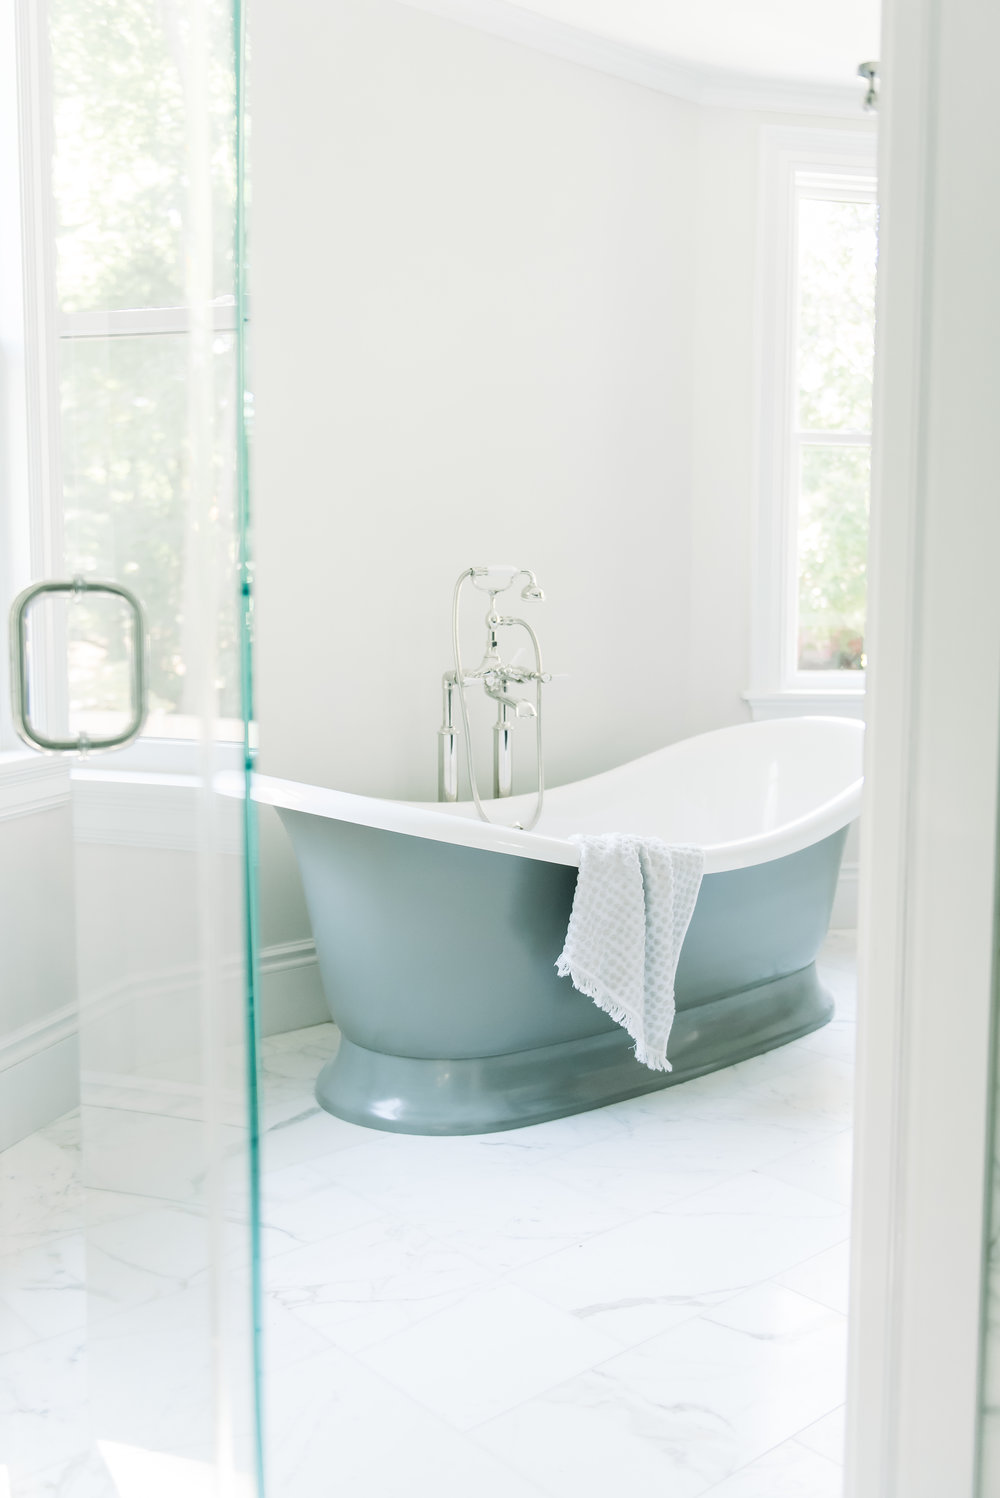 While cramming yourself into a shower stall… - to capture one of the most amazing tubs ever.